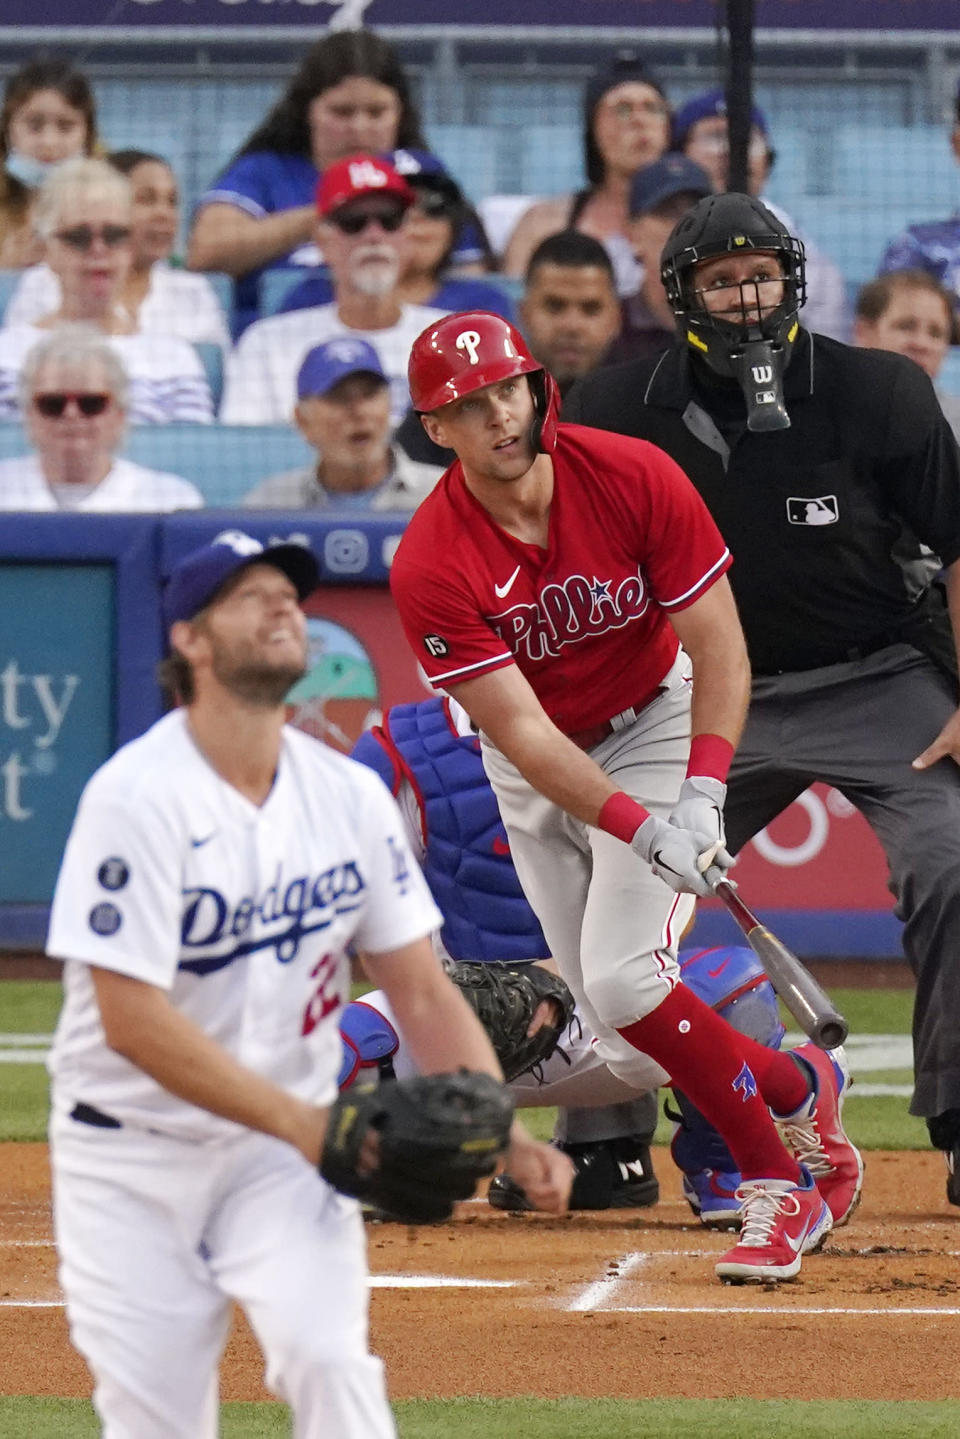 Philadelphia Phillies' Rhys Hoskins, center, hits a solo home run as Los Angeles Dodgers starting pitcher Clayton Kershaw, left, watches along with umpire Manny Gonzalez during the first inning of a baseball game Wednesday, June 16, 2021, in Los Angeles. (AP Photo/Mark J. Terrill)